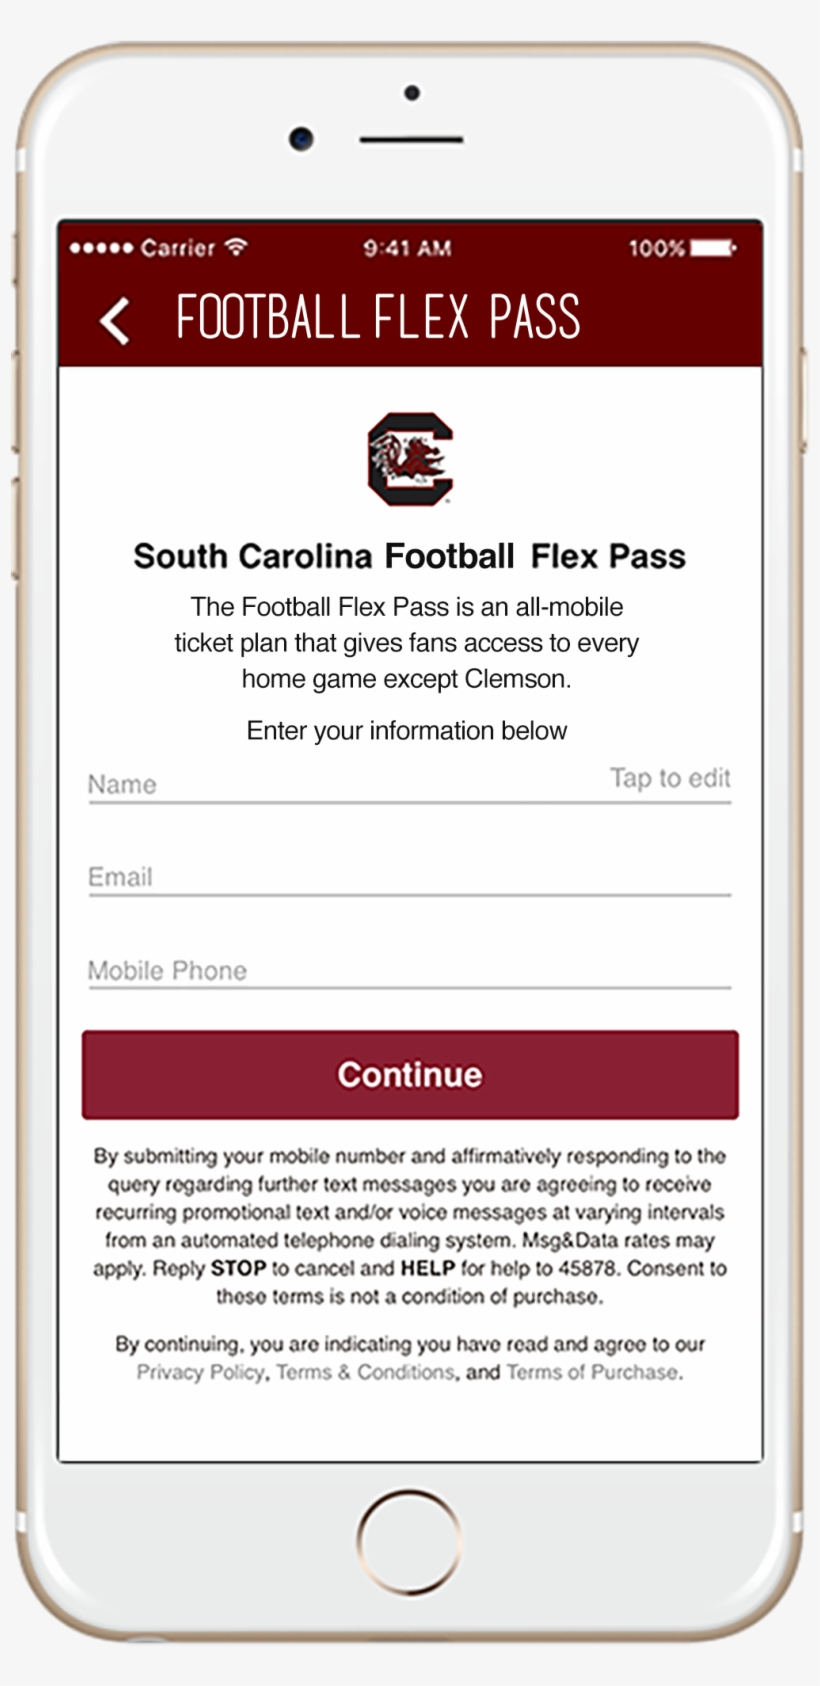 Fans Choose The Matchup And The Quantity Of Passes - South Carolina Gamecocks Football, transparent png #3072092